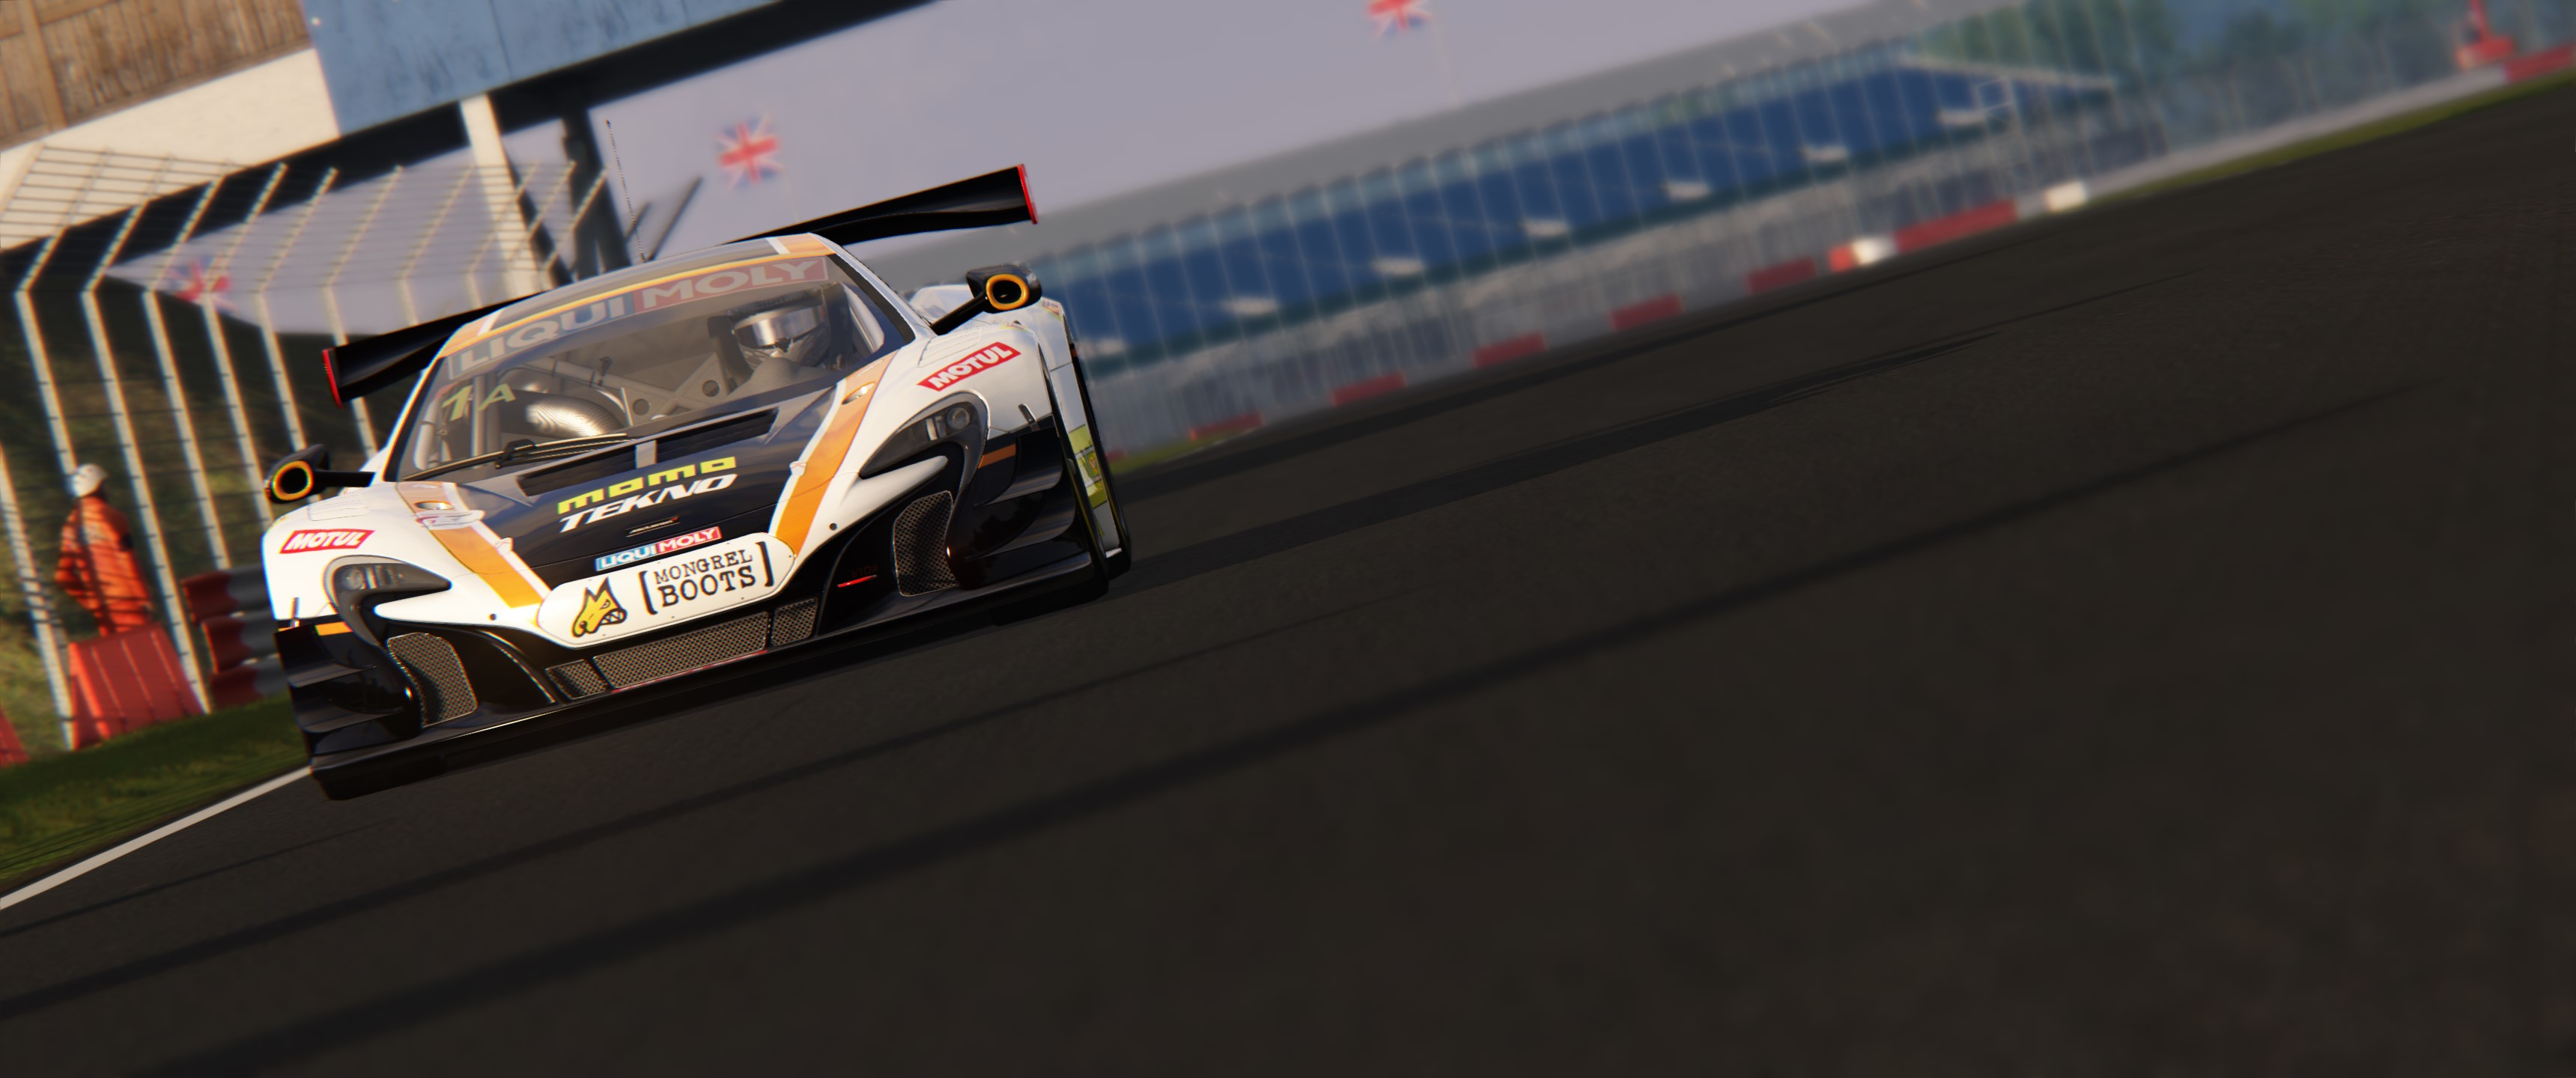 Screenshot_ks_mercedes_amg_gt3_ks_silverstone_14-4-117-21-29-9.jpg